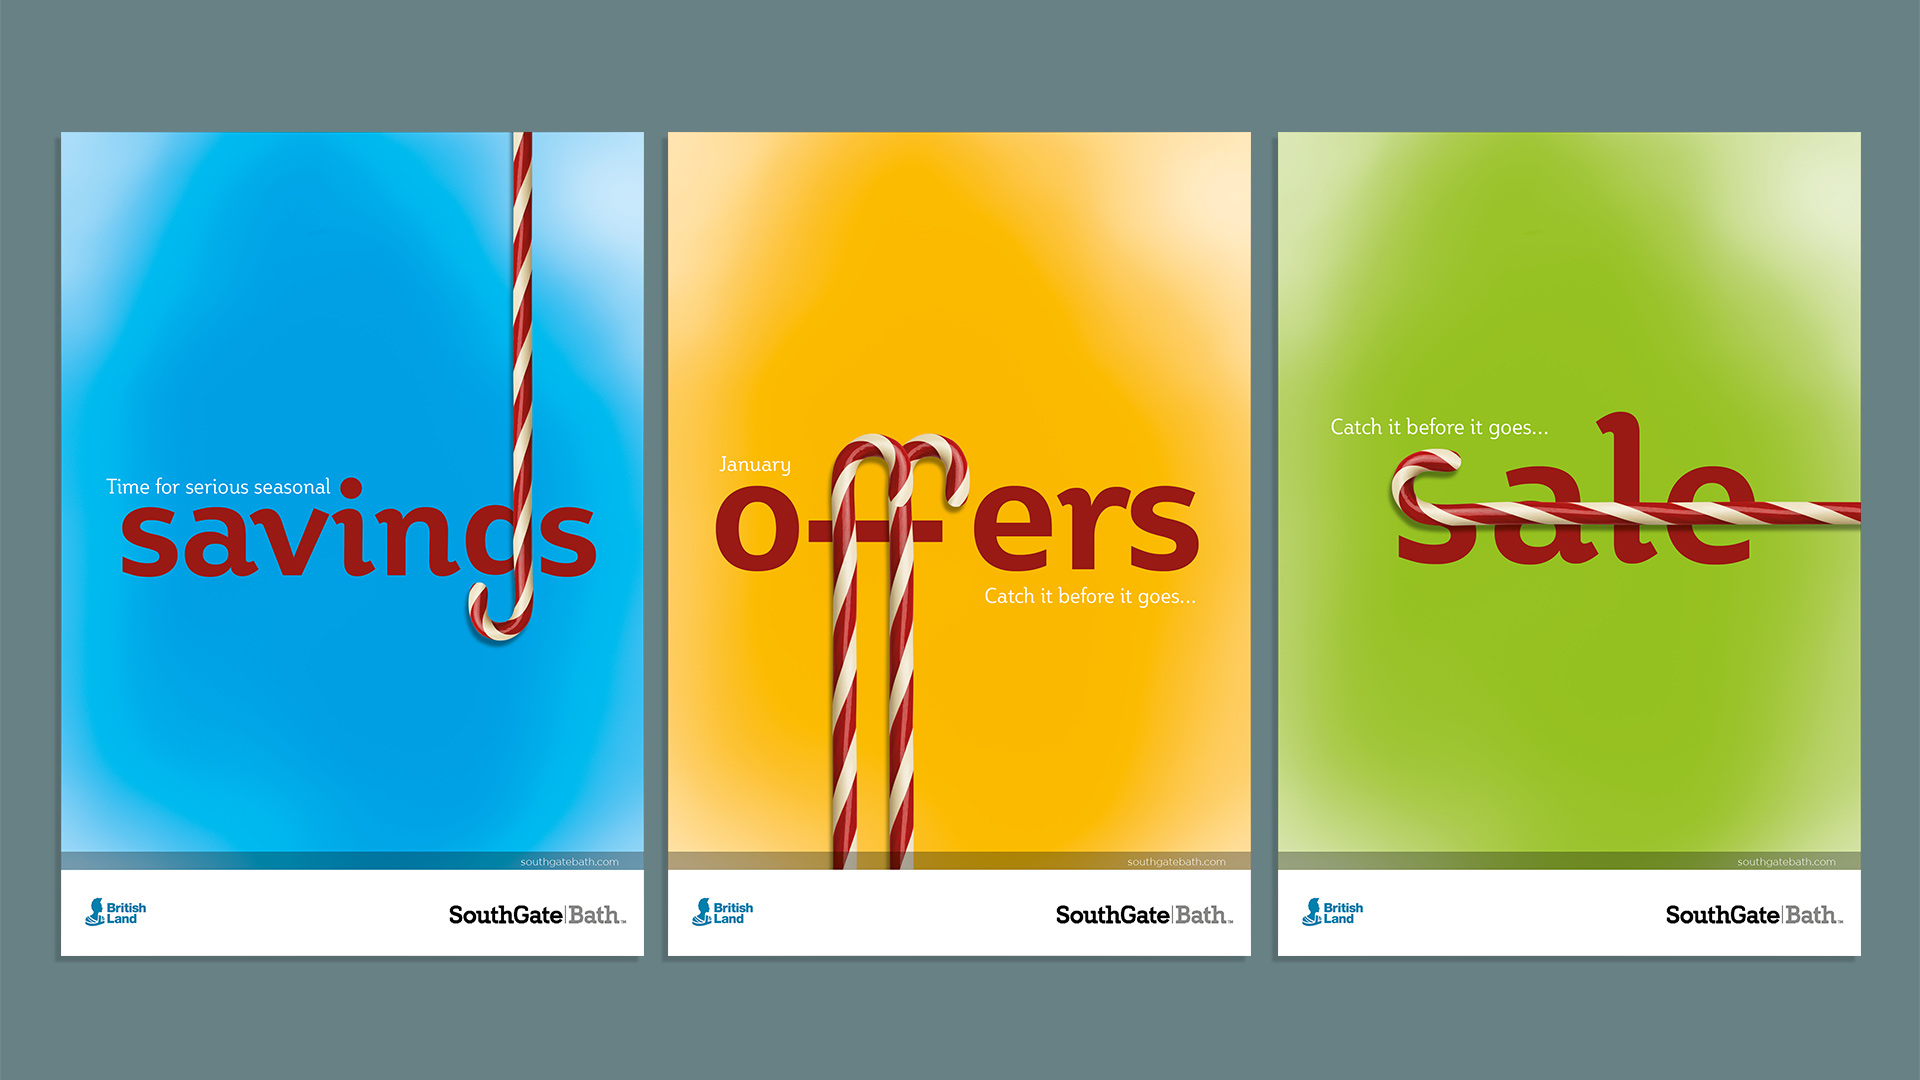 SouthGate January offers creative adverts